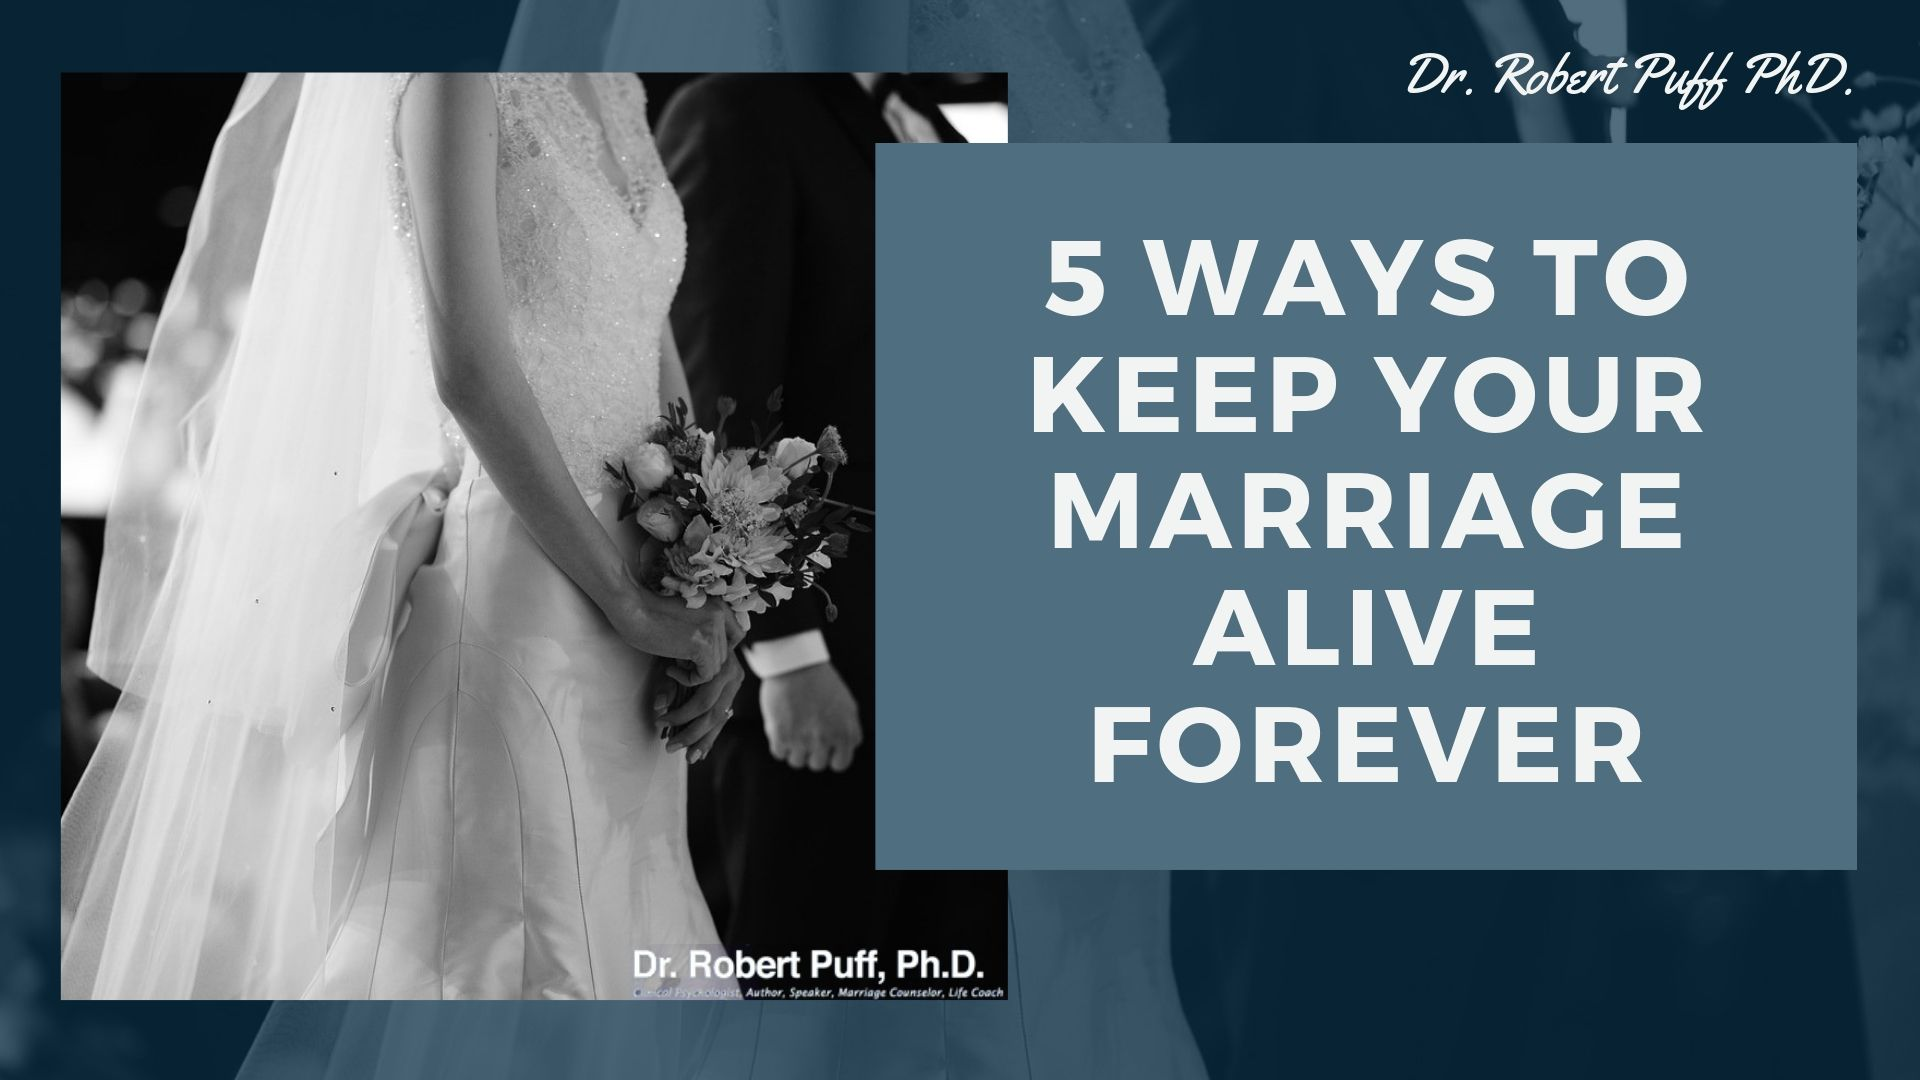 5 Ways To Keep Your Marriage Alive Forever